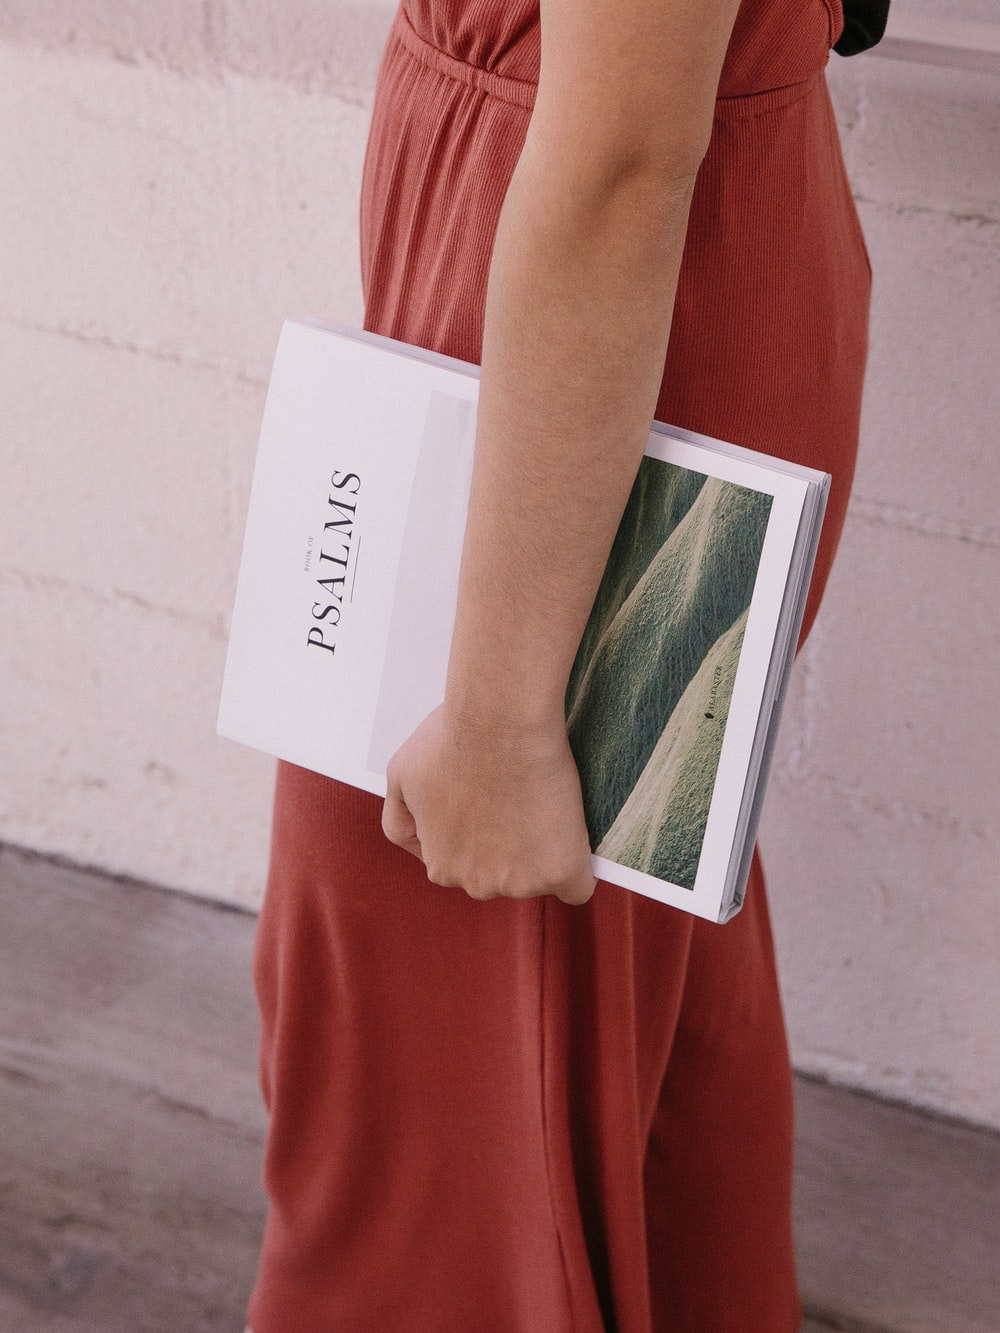 woman wearing red jumpsuit holding Psalms book